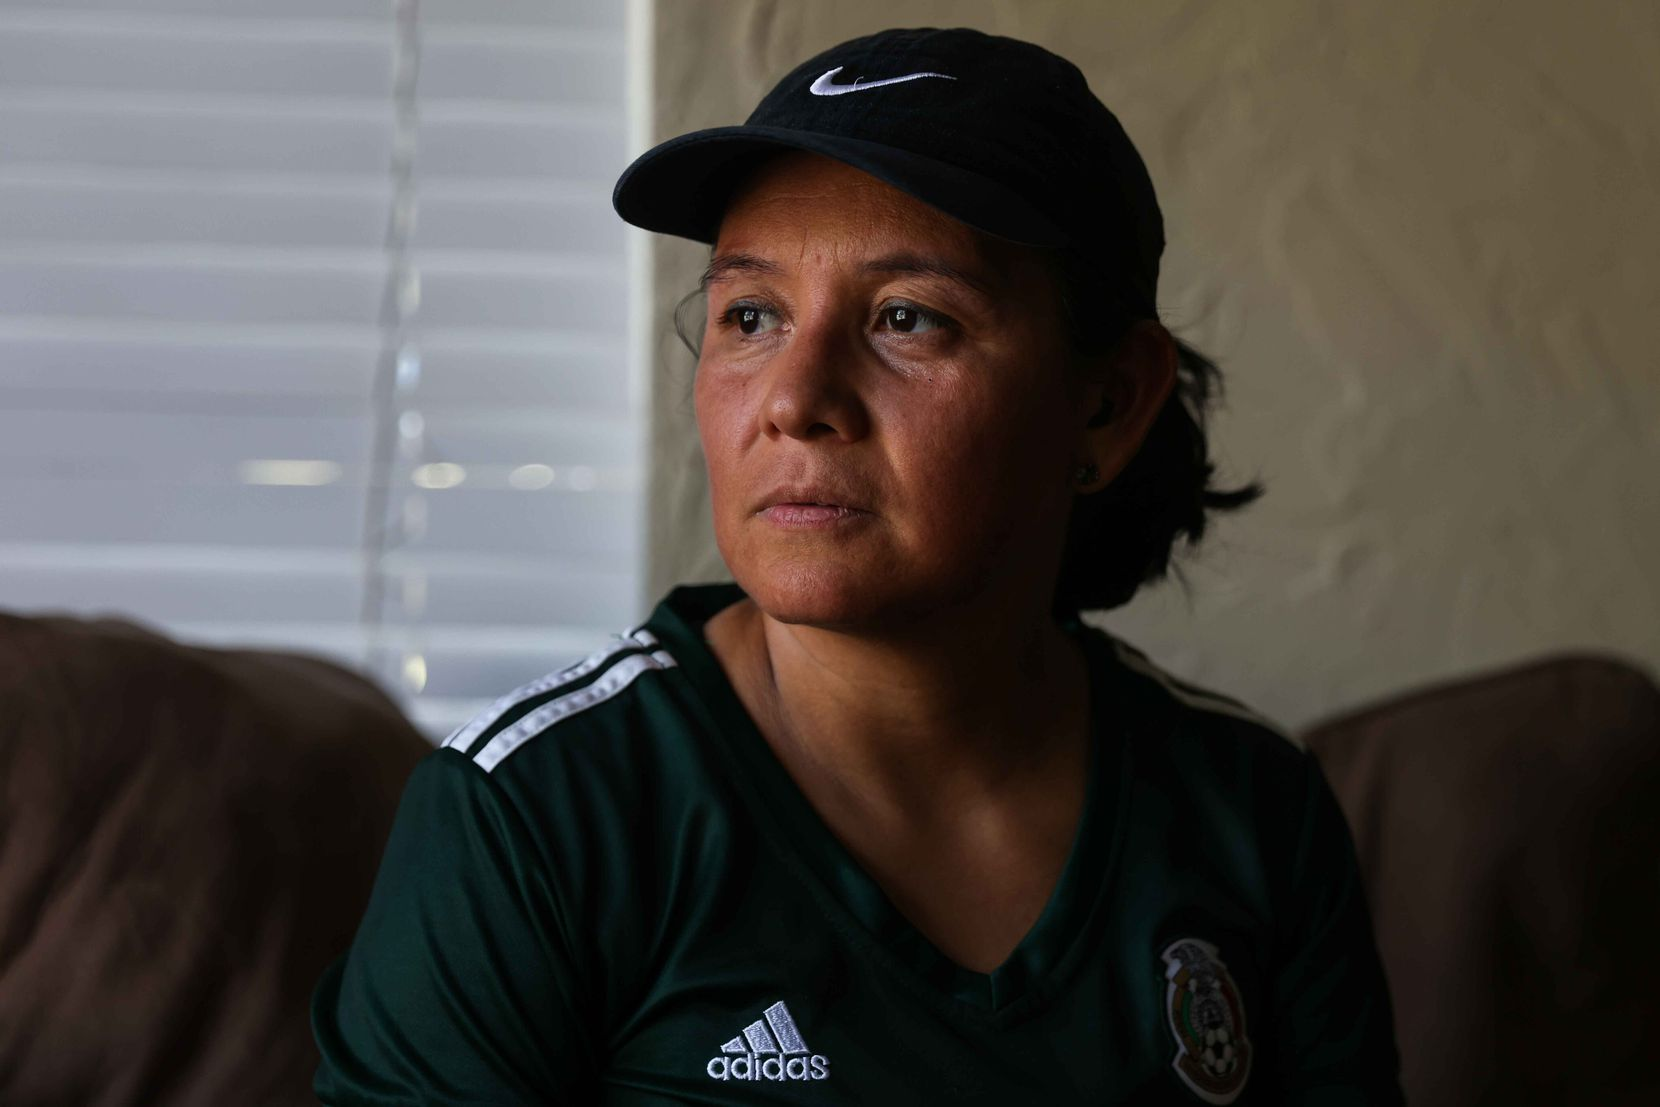 Julieta Montemayor poses at her home in Farmers Branch on Tuesday, September 7, 2021. Montemayor and her husband were working next to the Pentagon on September 11, 2001 when an American Airlines flight crashed into the building.